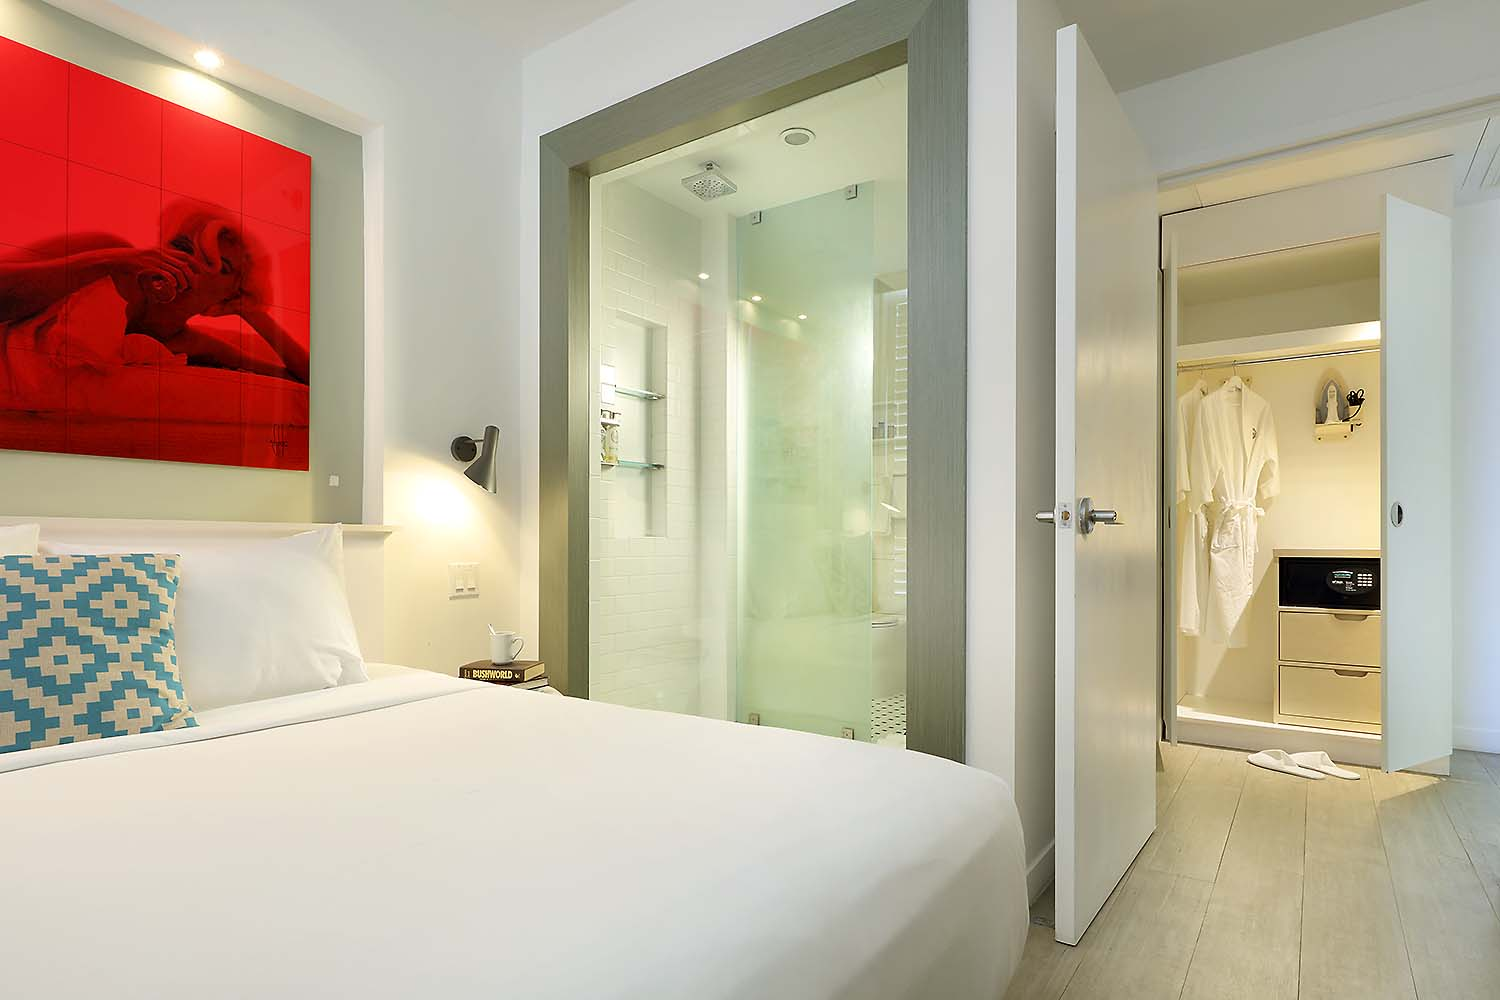 Rooms eurostars vintro hotel in miami beach - 2 bedroom hotel suites in miami south beach ...